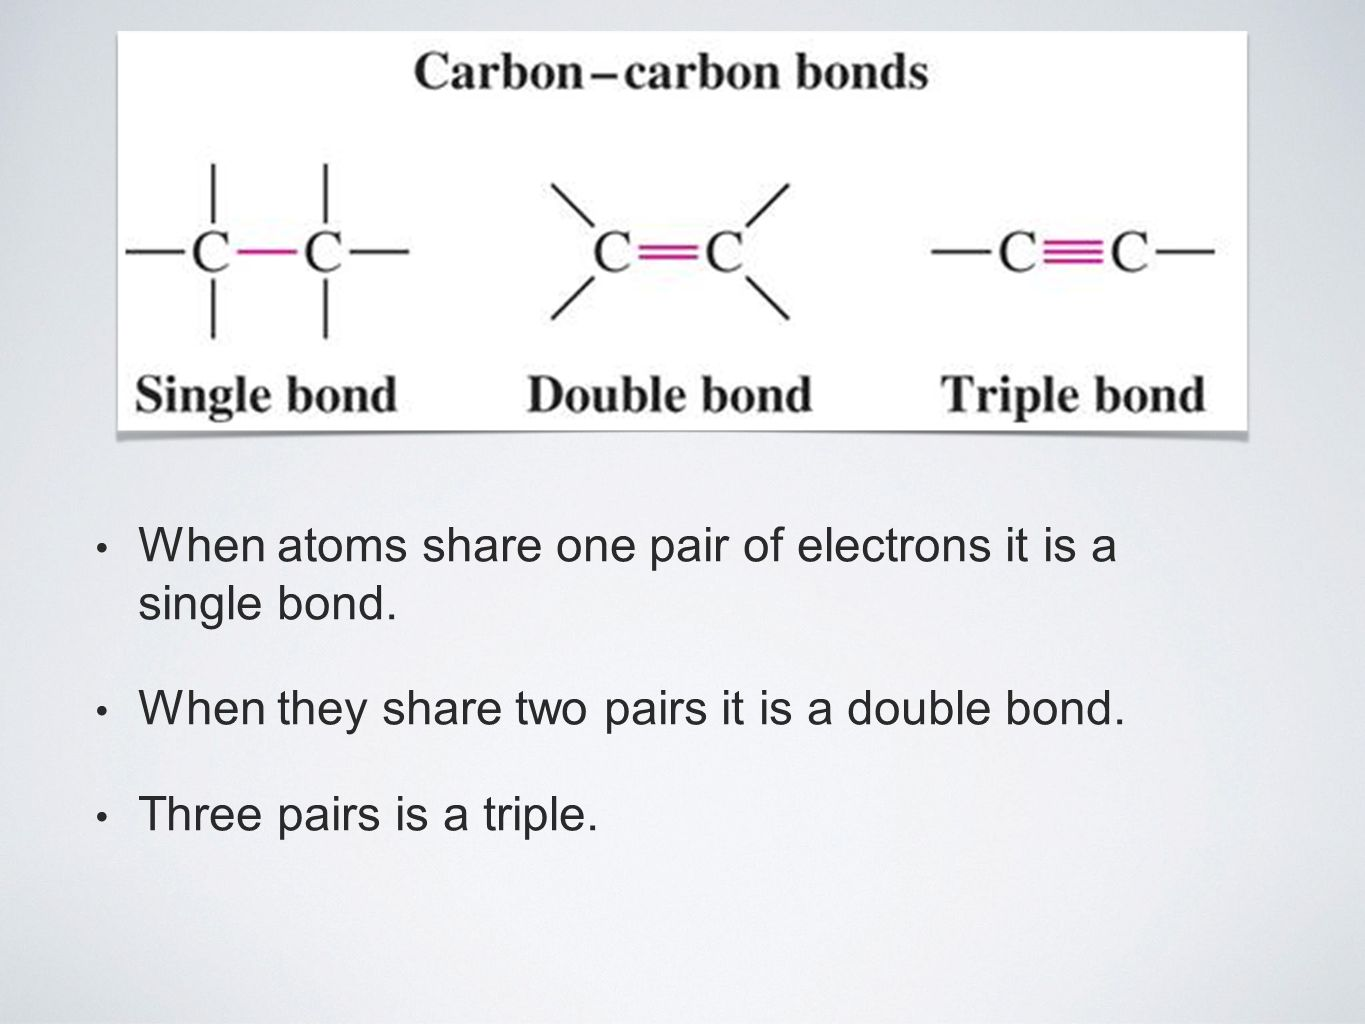 When atoms share one pair of electrons it is a single bond.